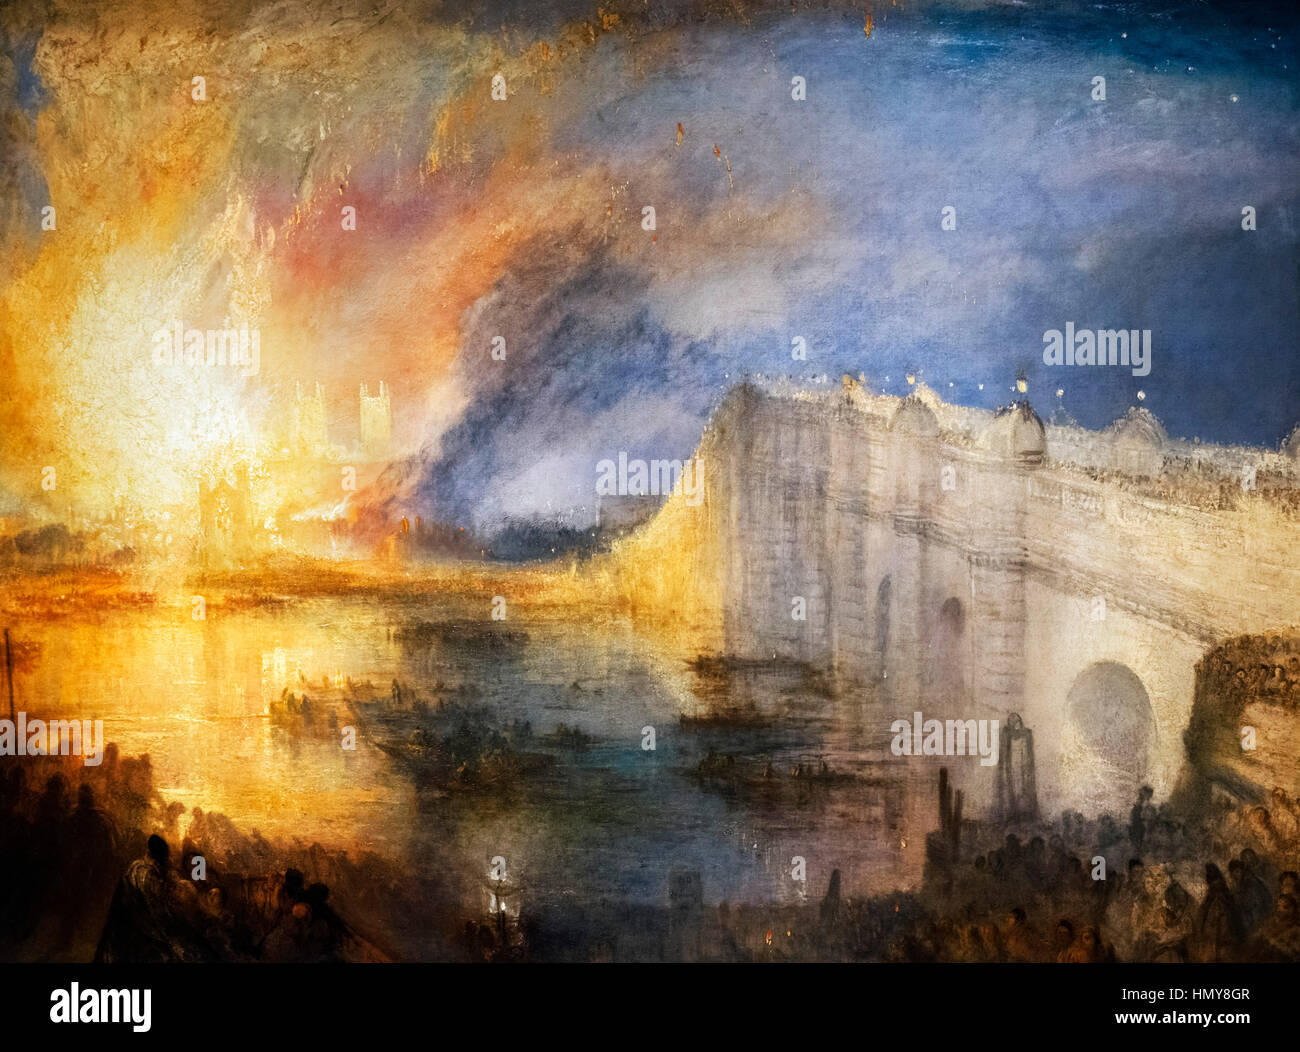 JMW Turner, The Burning of the Houses of Parliament, 16th October 1834, oil on canvas, c.1834/5 - Stock Image